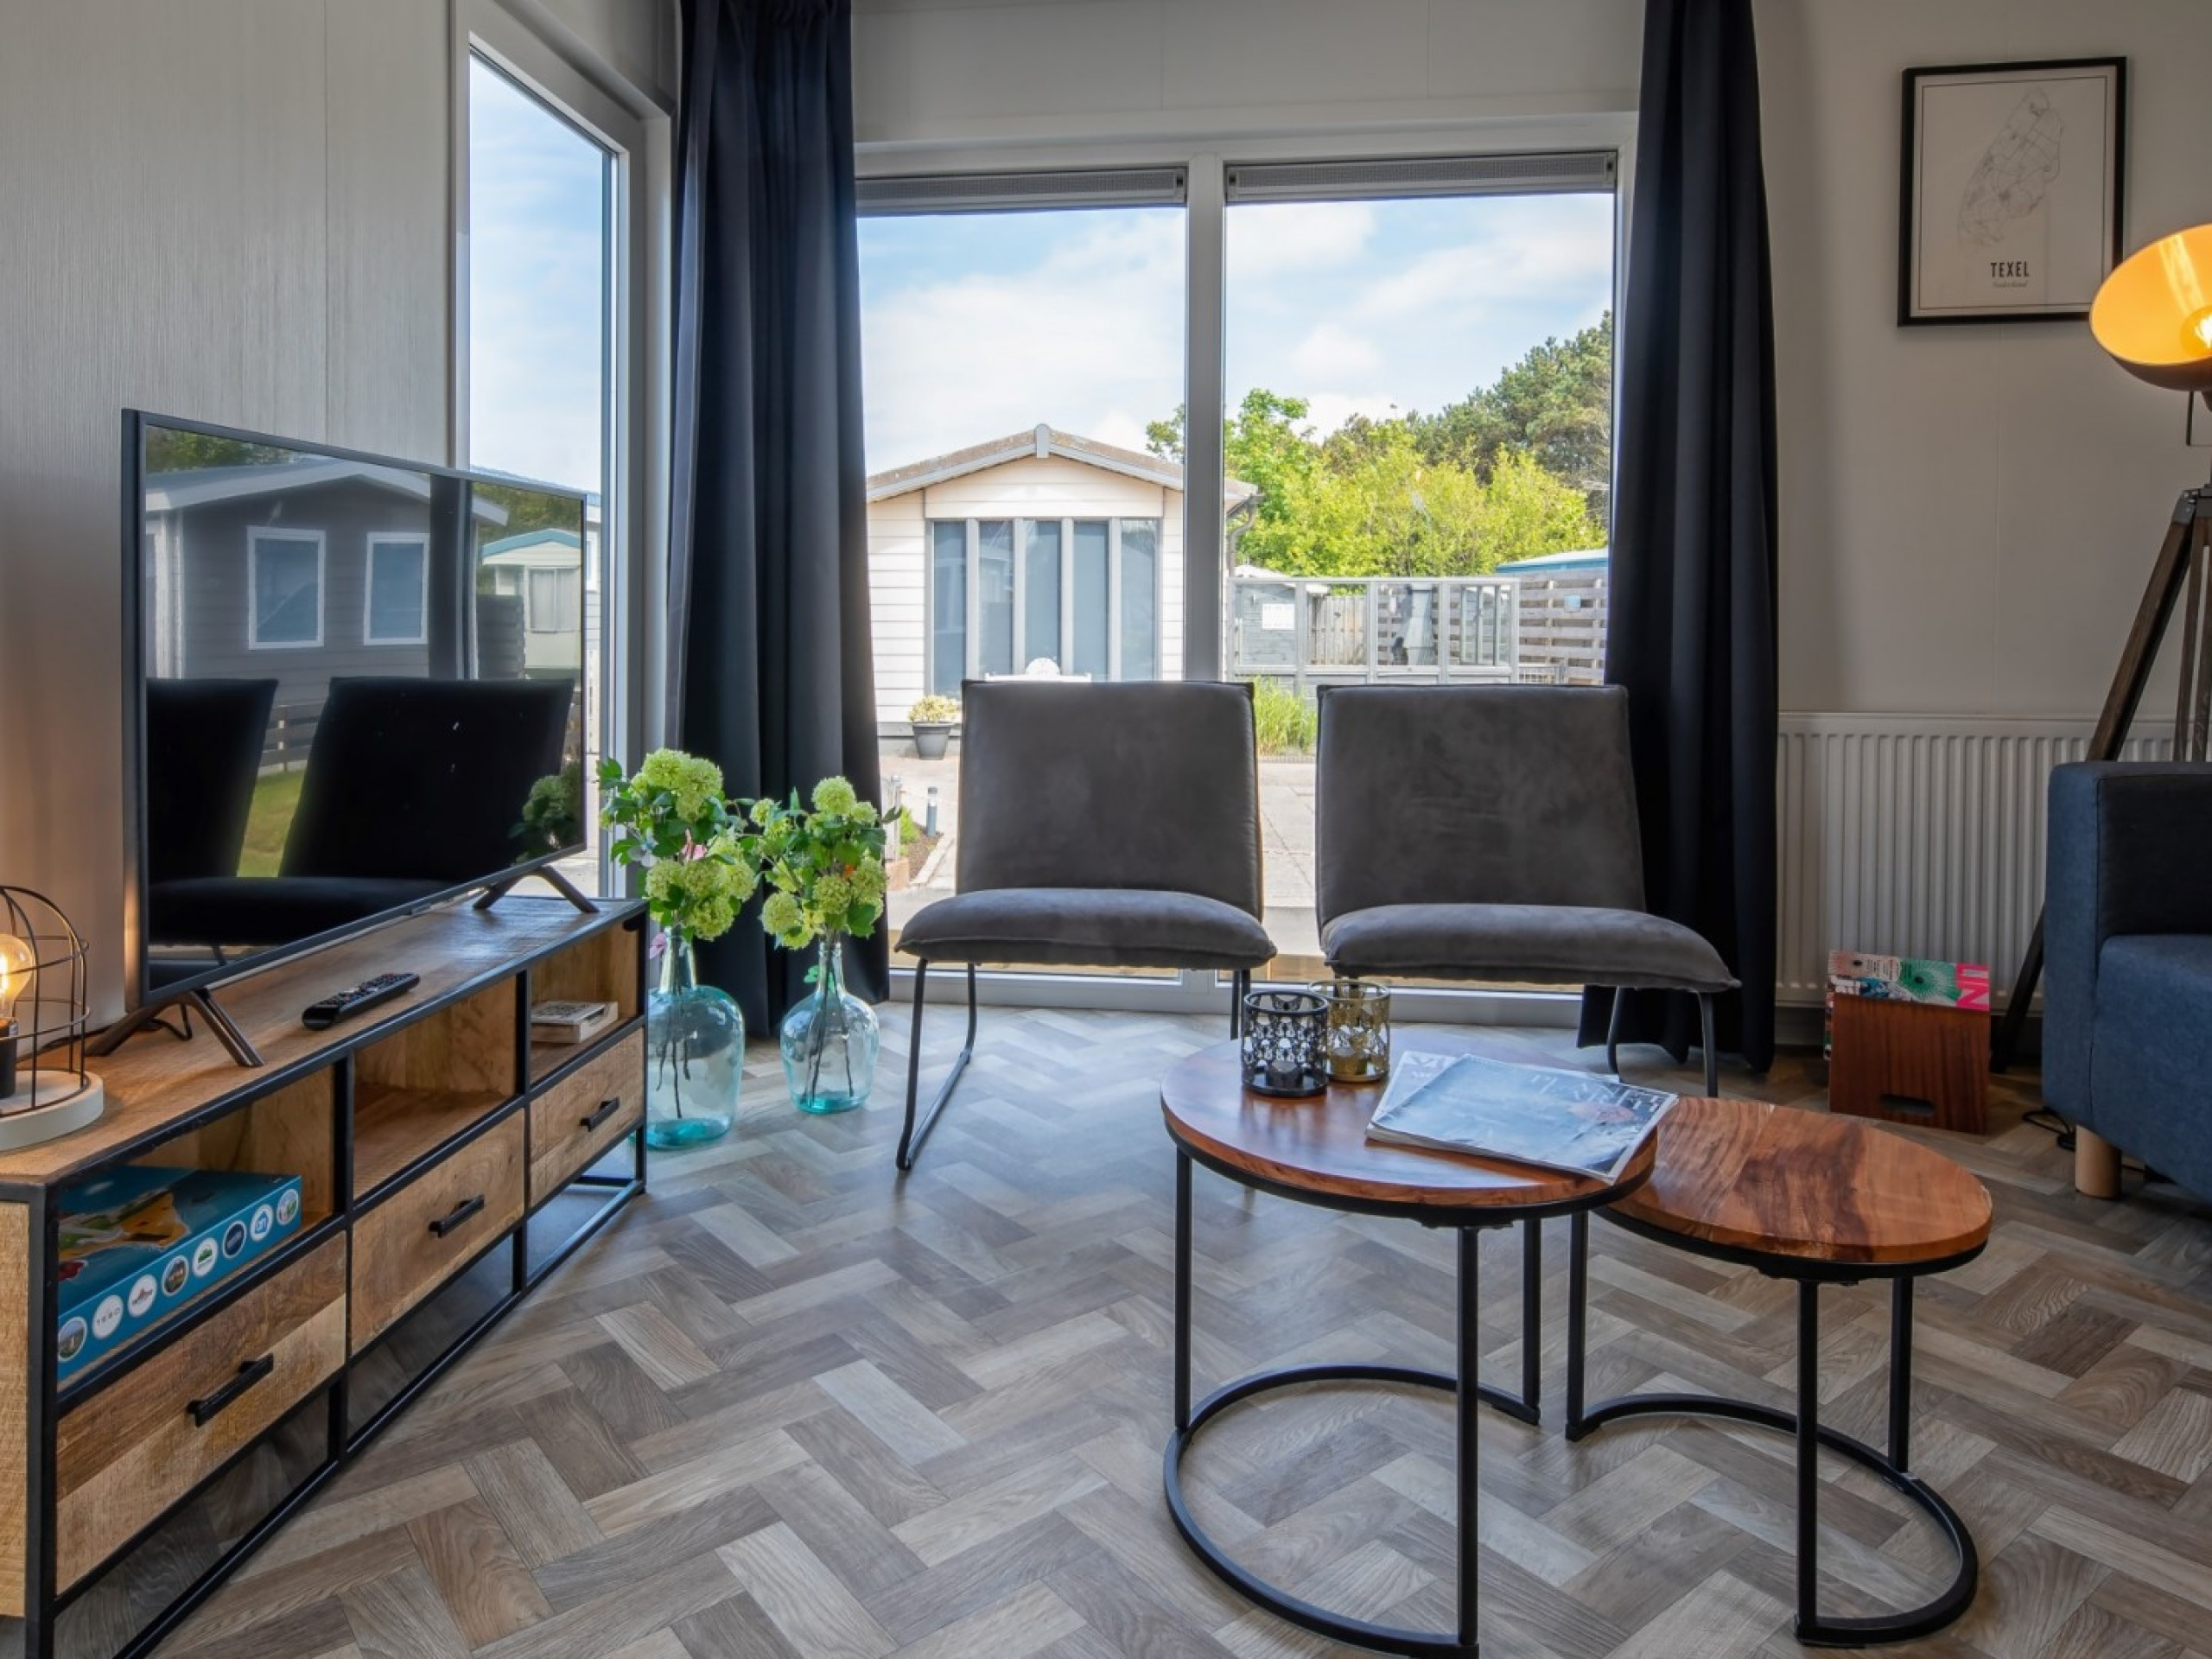 New modern chalet with ideal location near the North Sea beach in De Koog